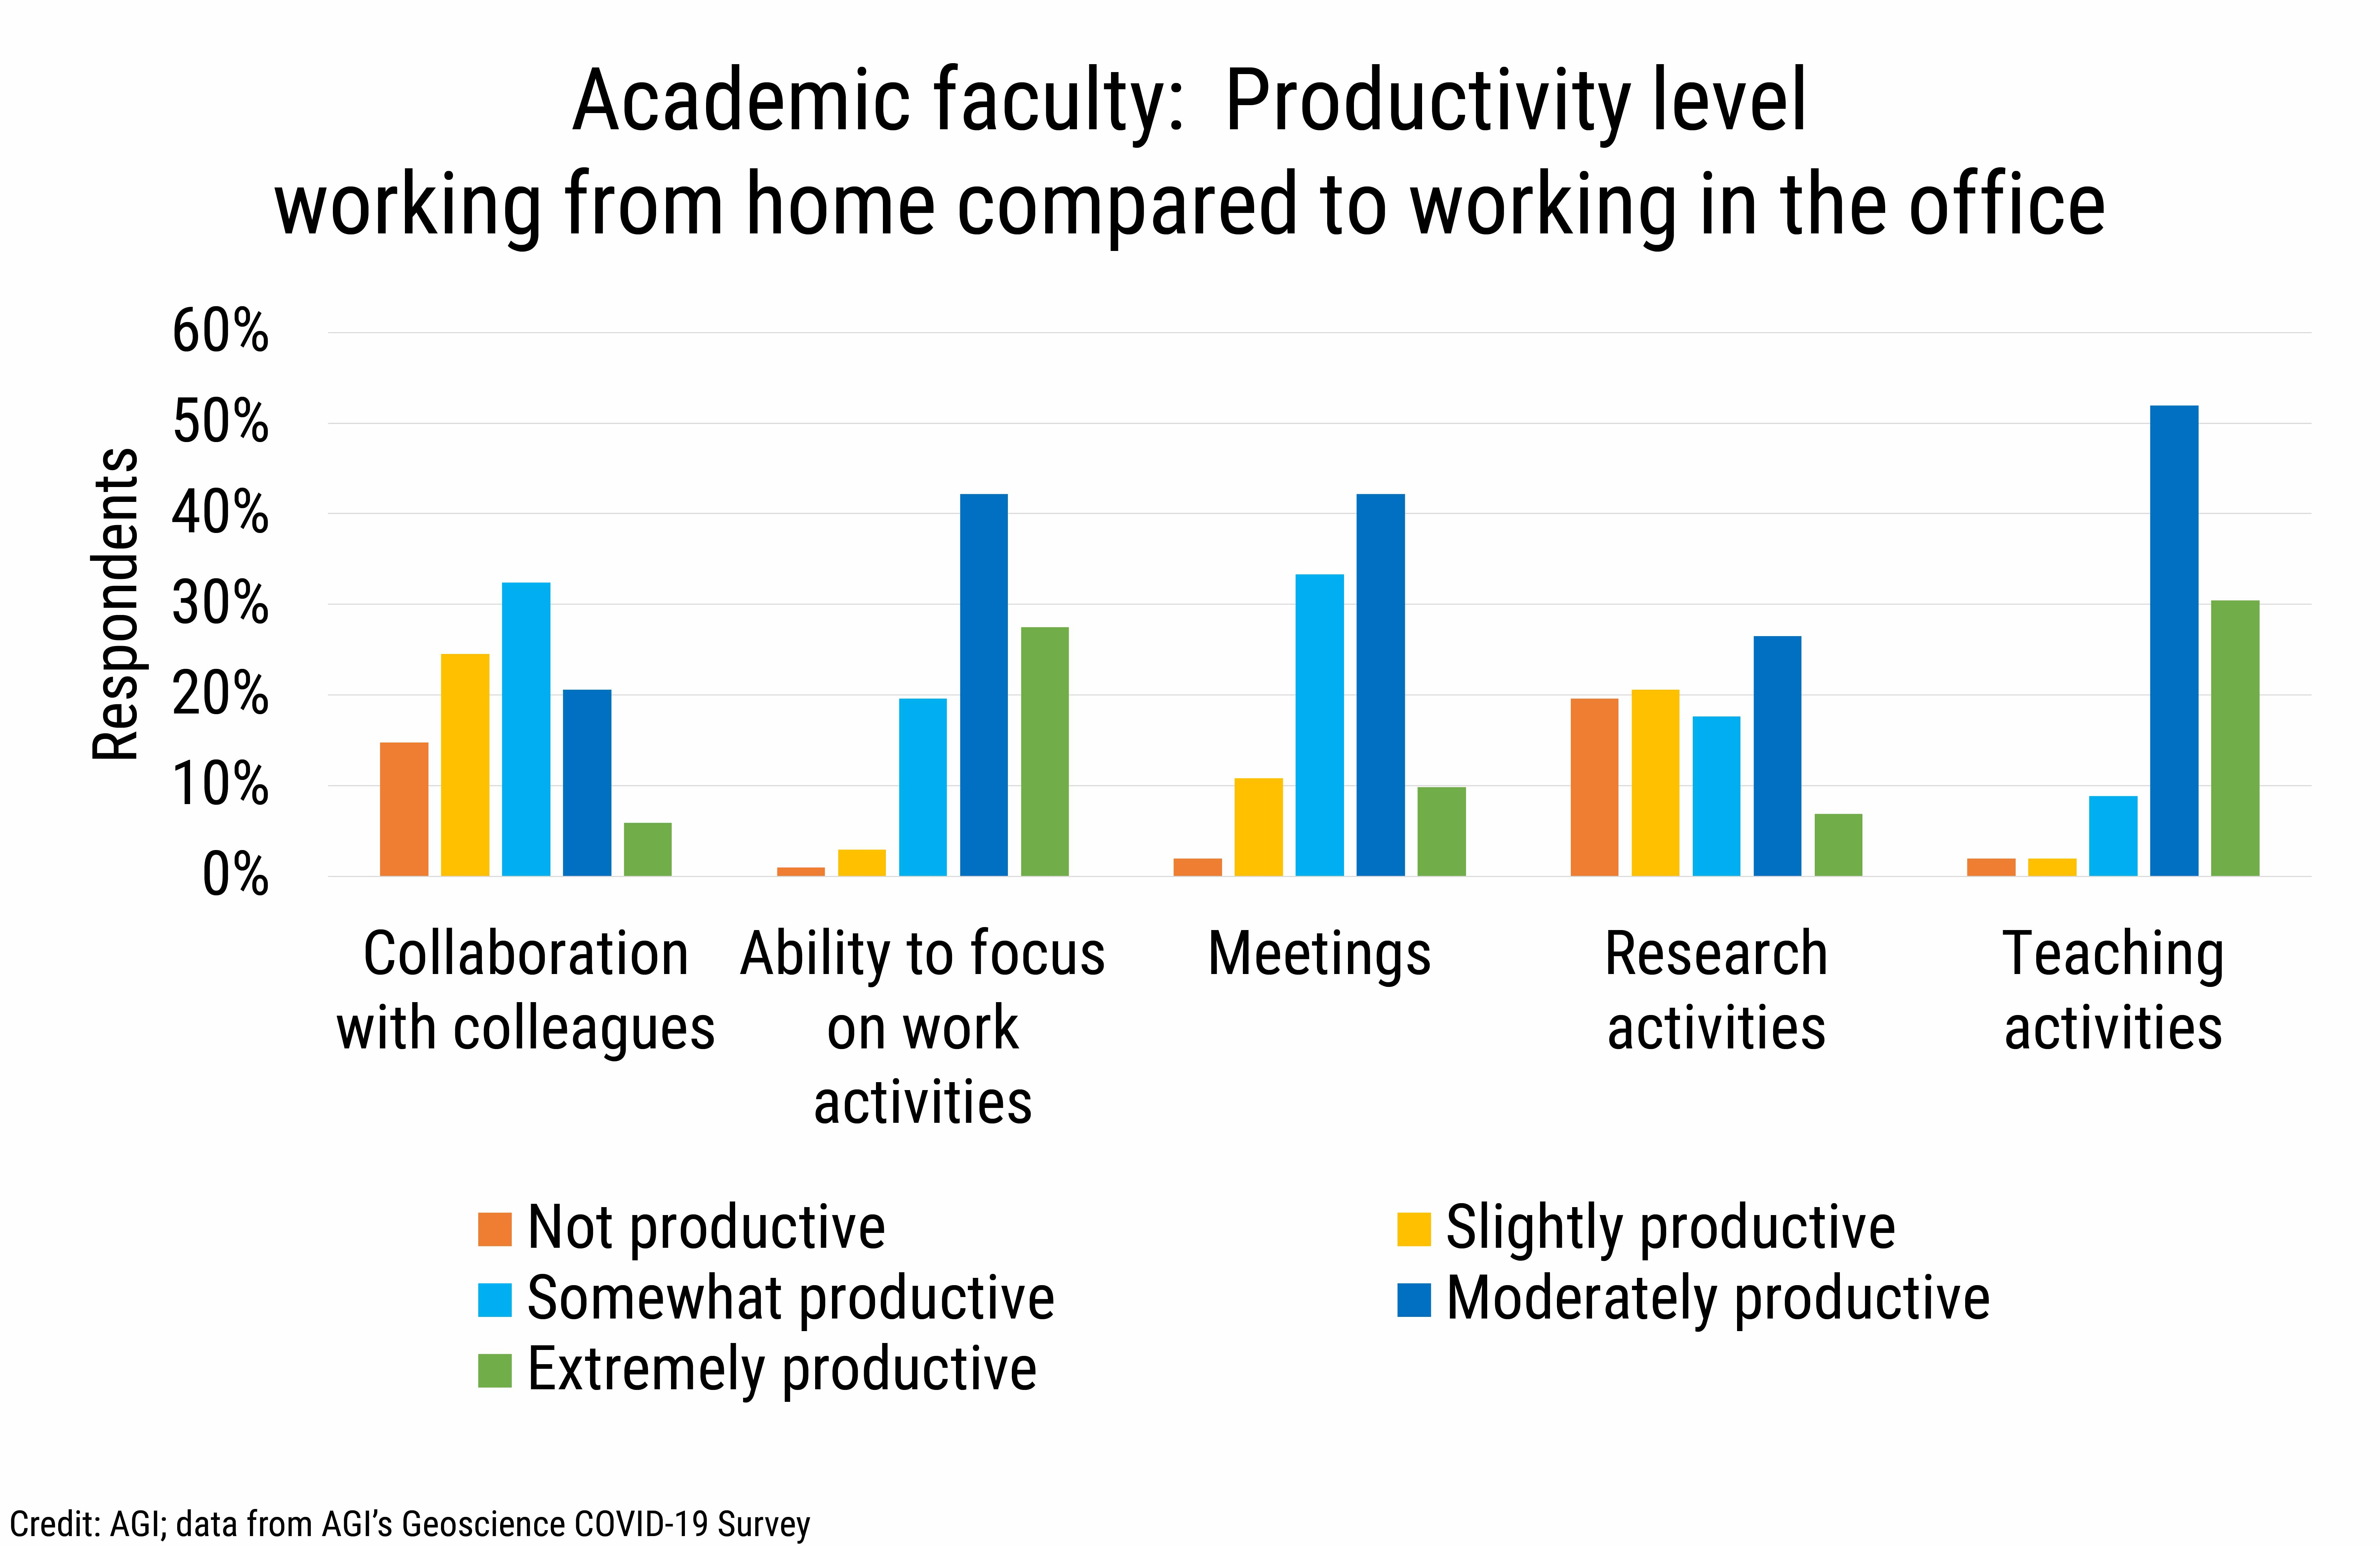 DB_2021-018 chart 02: Academic faculty: Productivity level working from home compared to working in the office (Credit: AGI; data from AGI's Geoscience COVID-19 Survey)